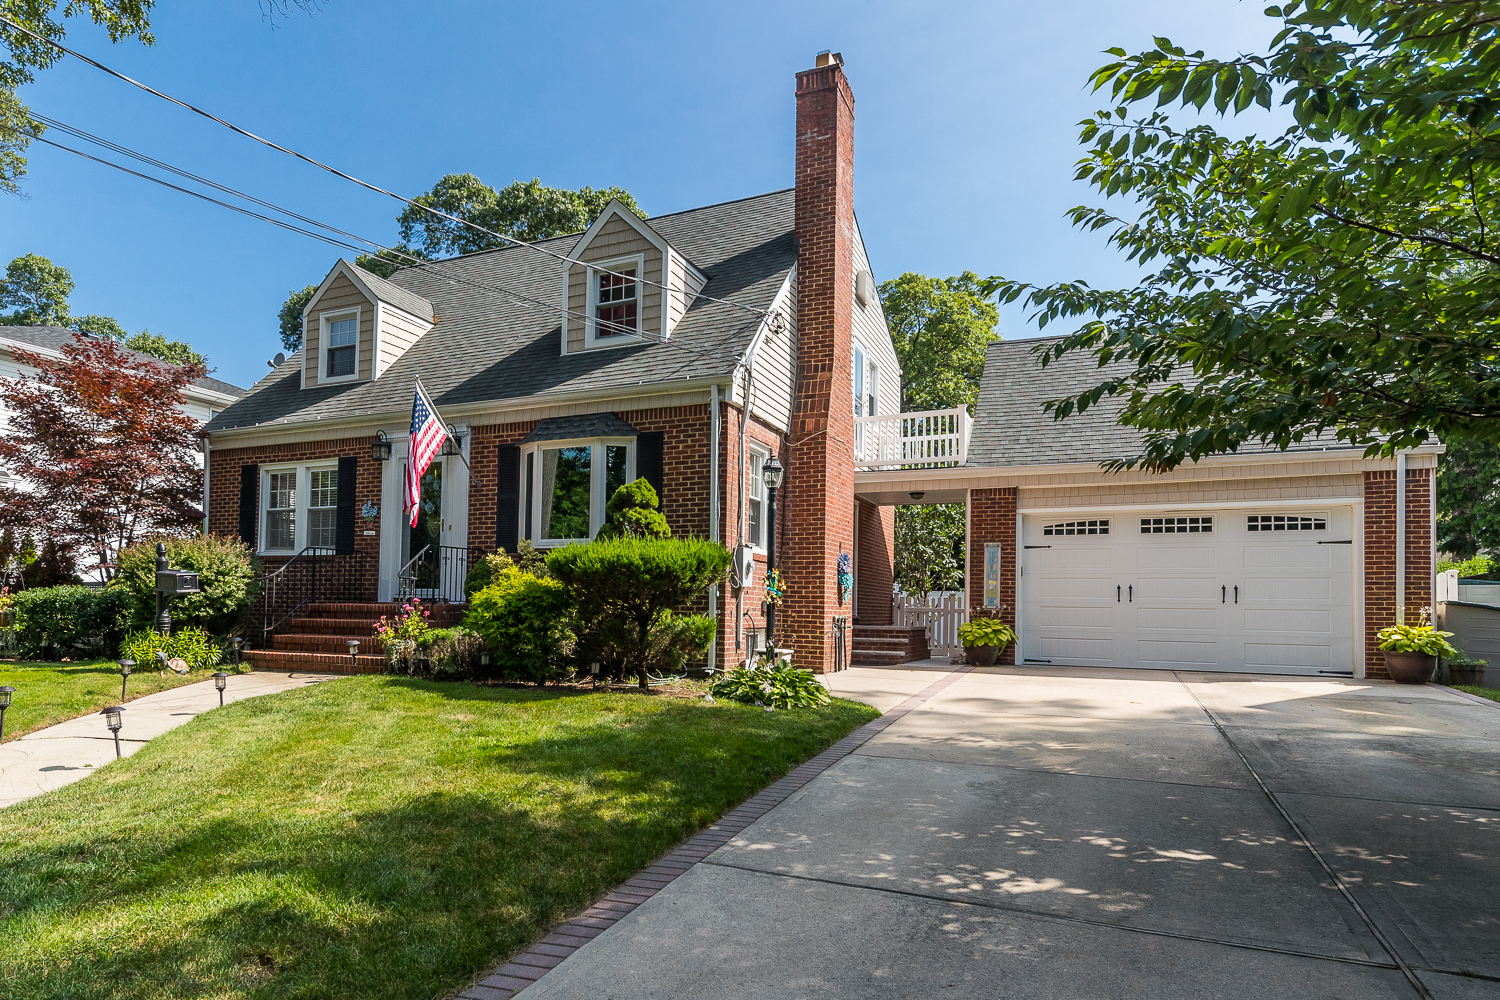 Single Family Homes for Sale at Valley Stream 227 E Carpenter St Valley Stream, New York 11580 United States